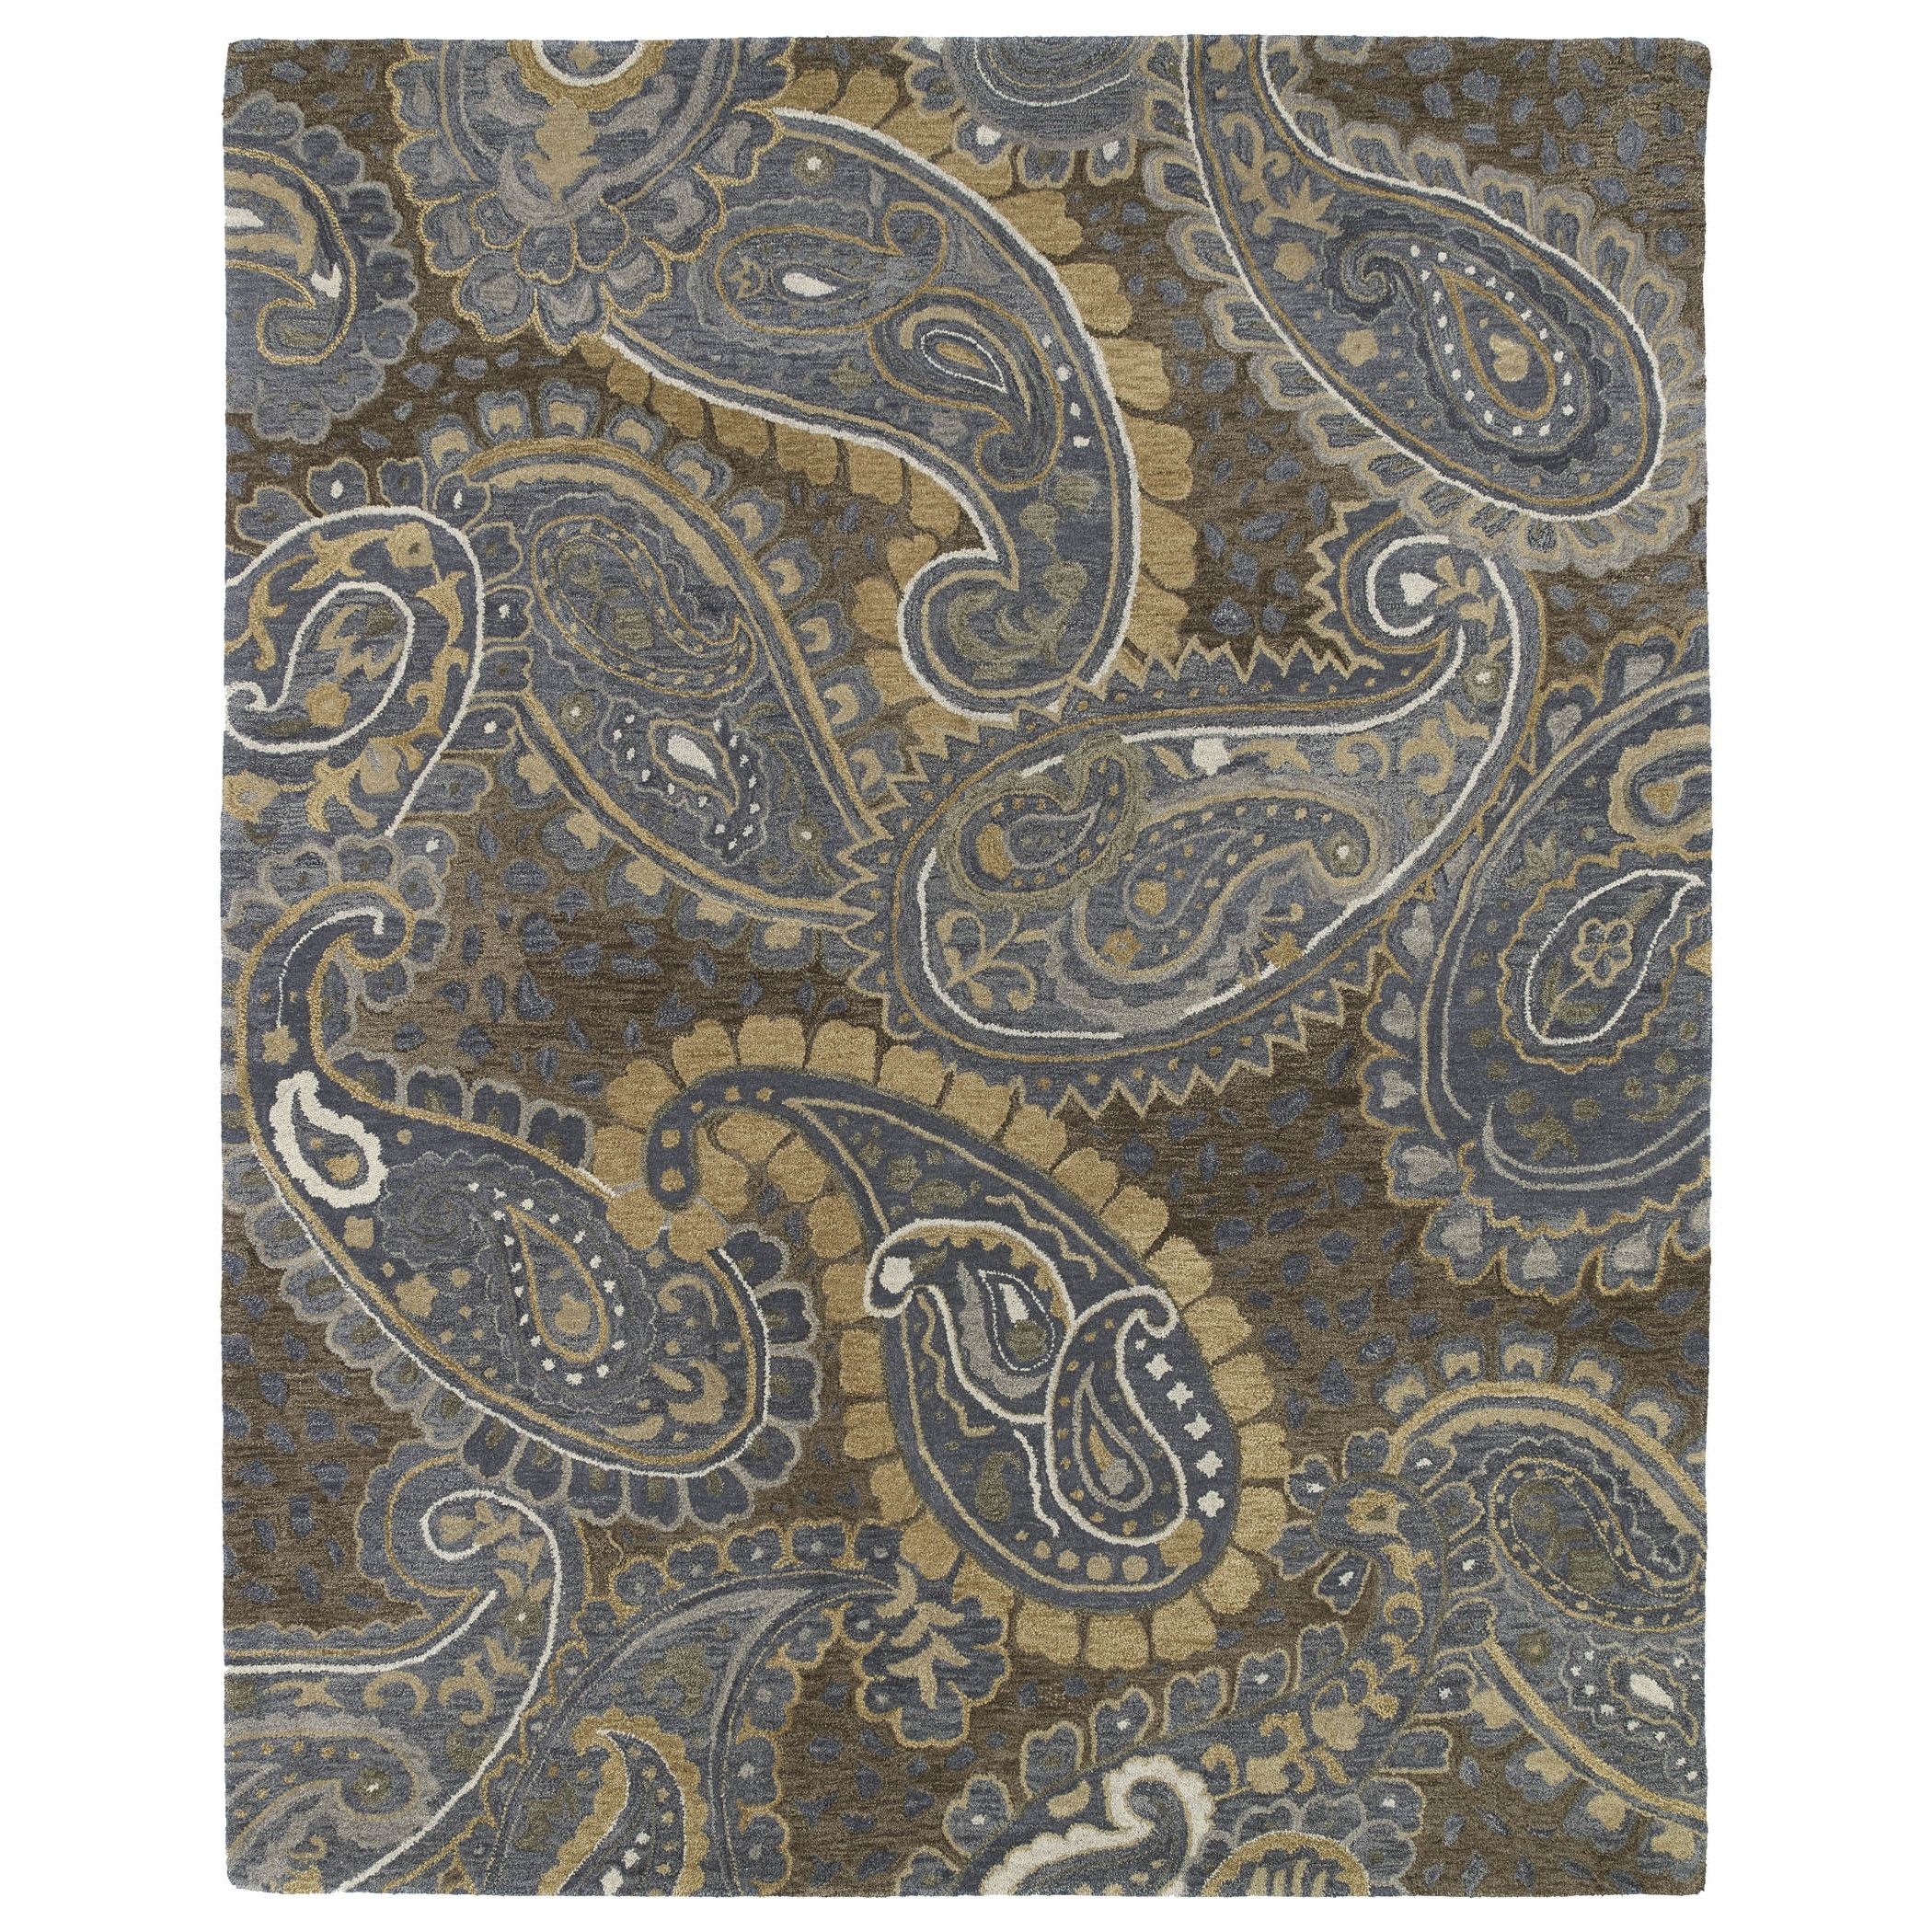 A trendy paisley pattern in rich browns and soft denim colors ...